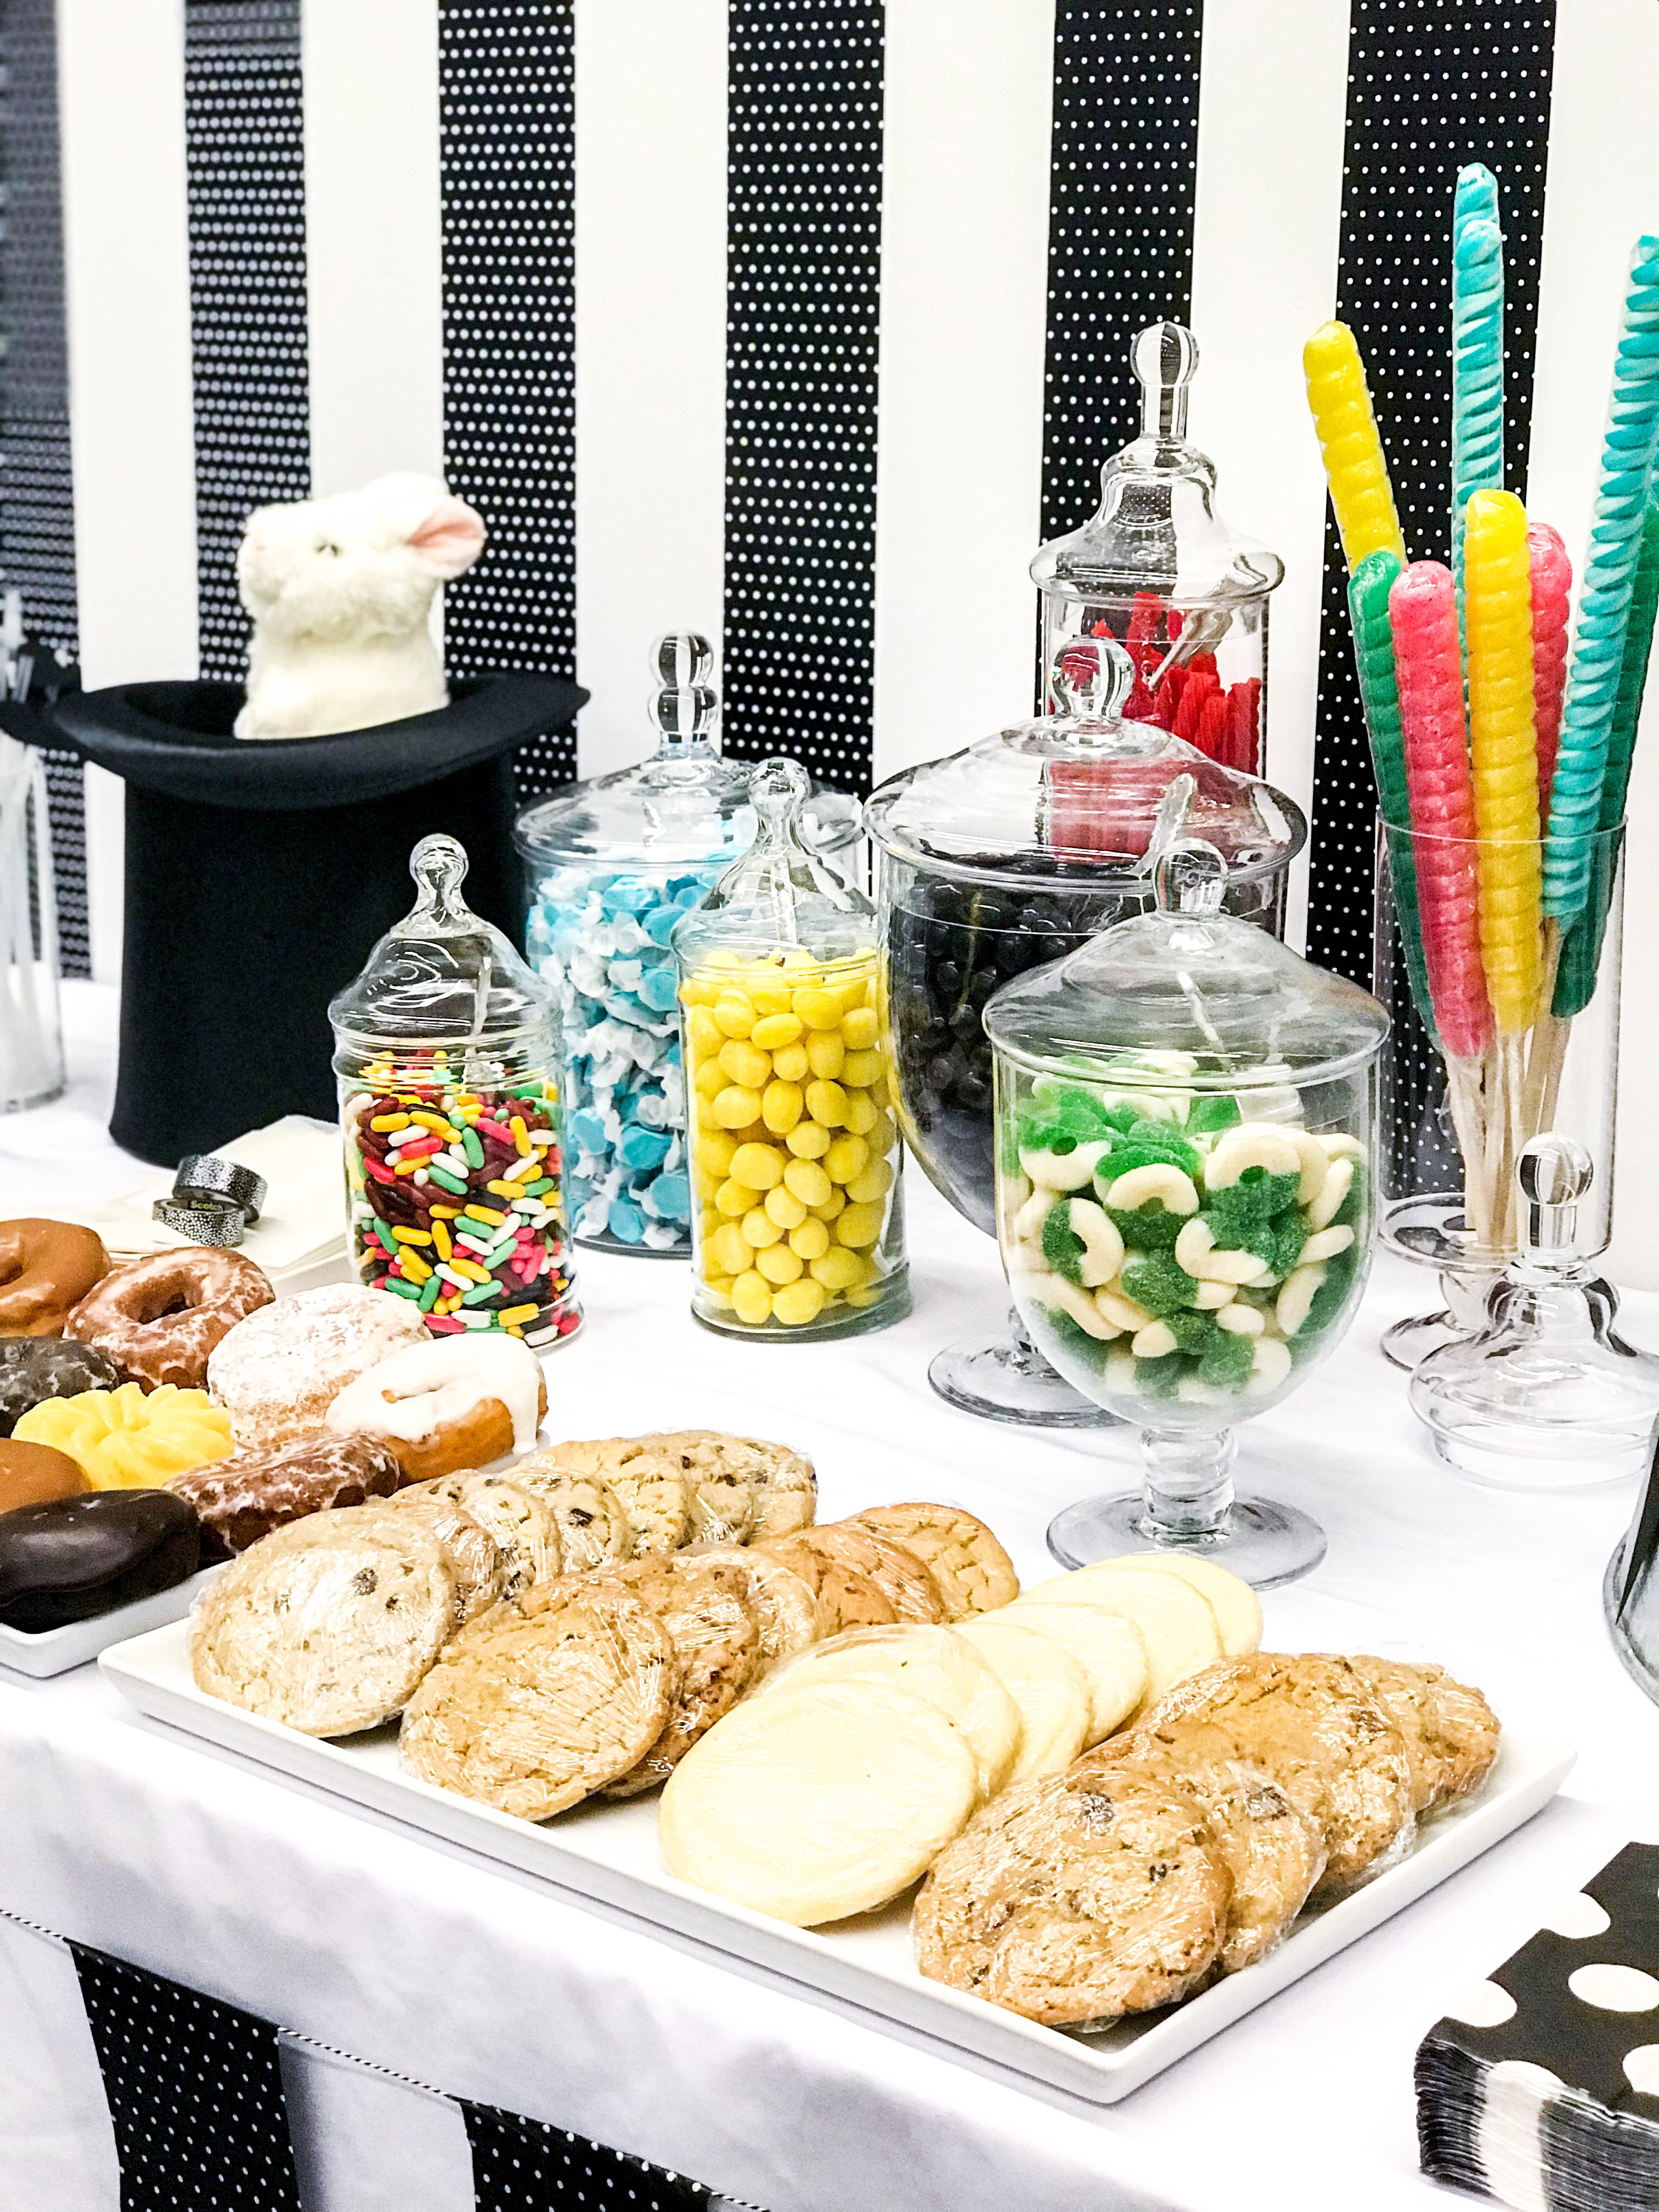 Greatest Showman Party Ideas - Vintage Circus Treats Ideas - Circus Party Food ideas from @pagingsupermom